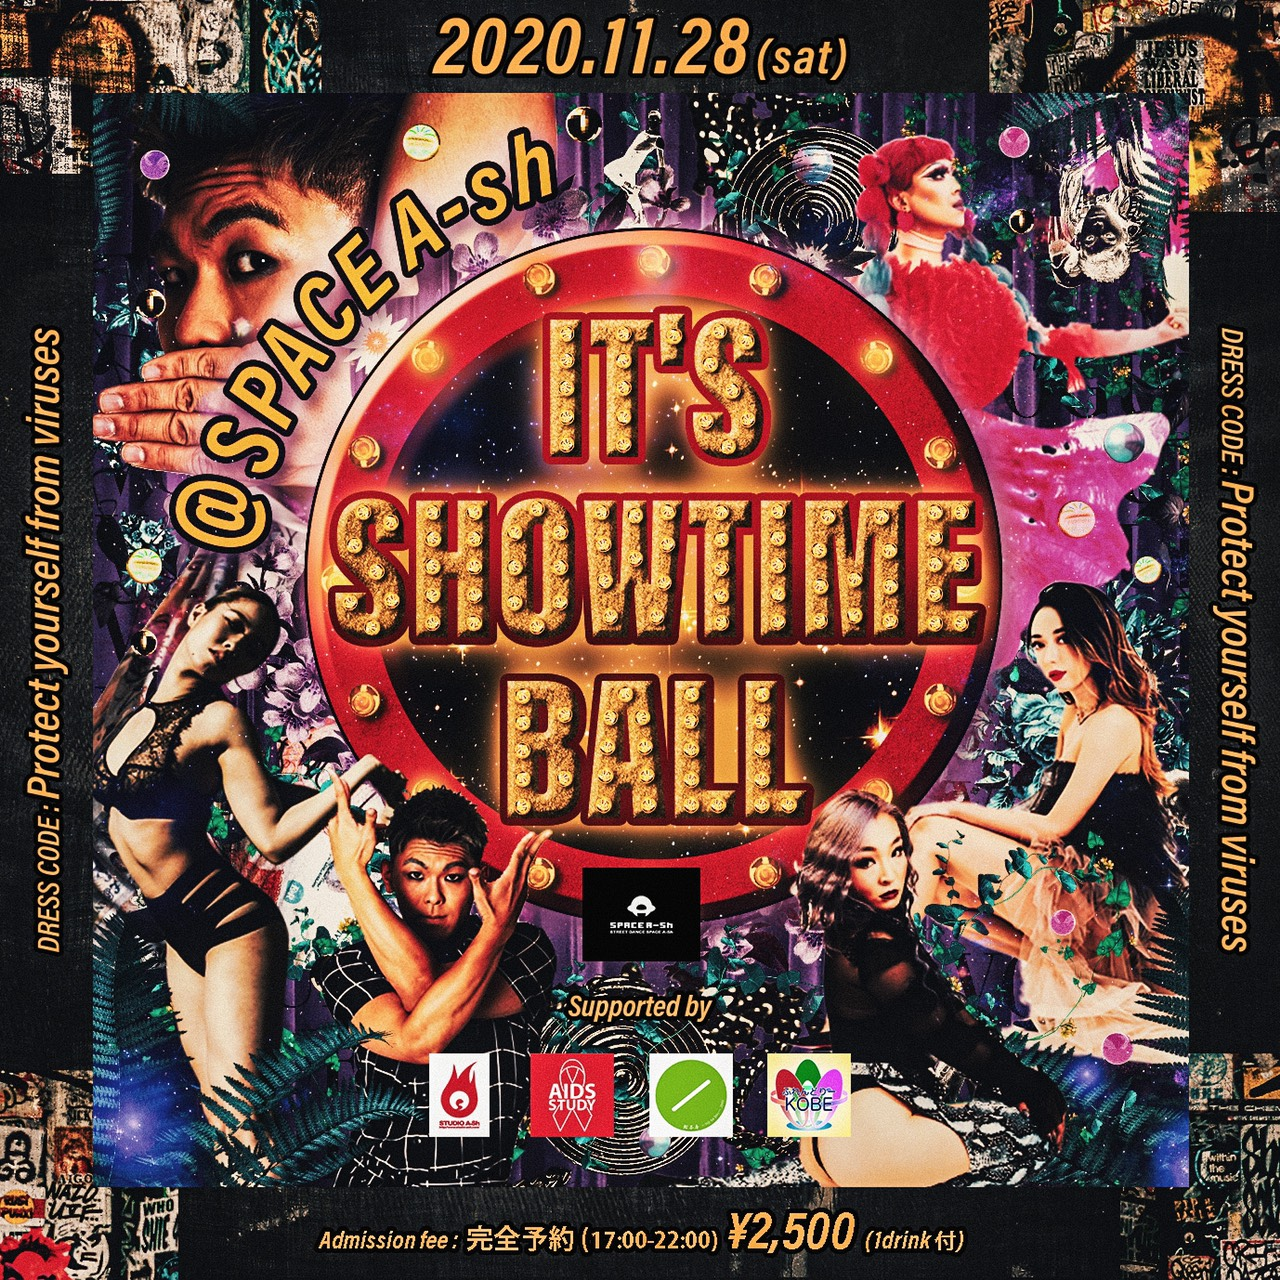 It's SHOWTIME BALL